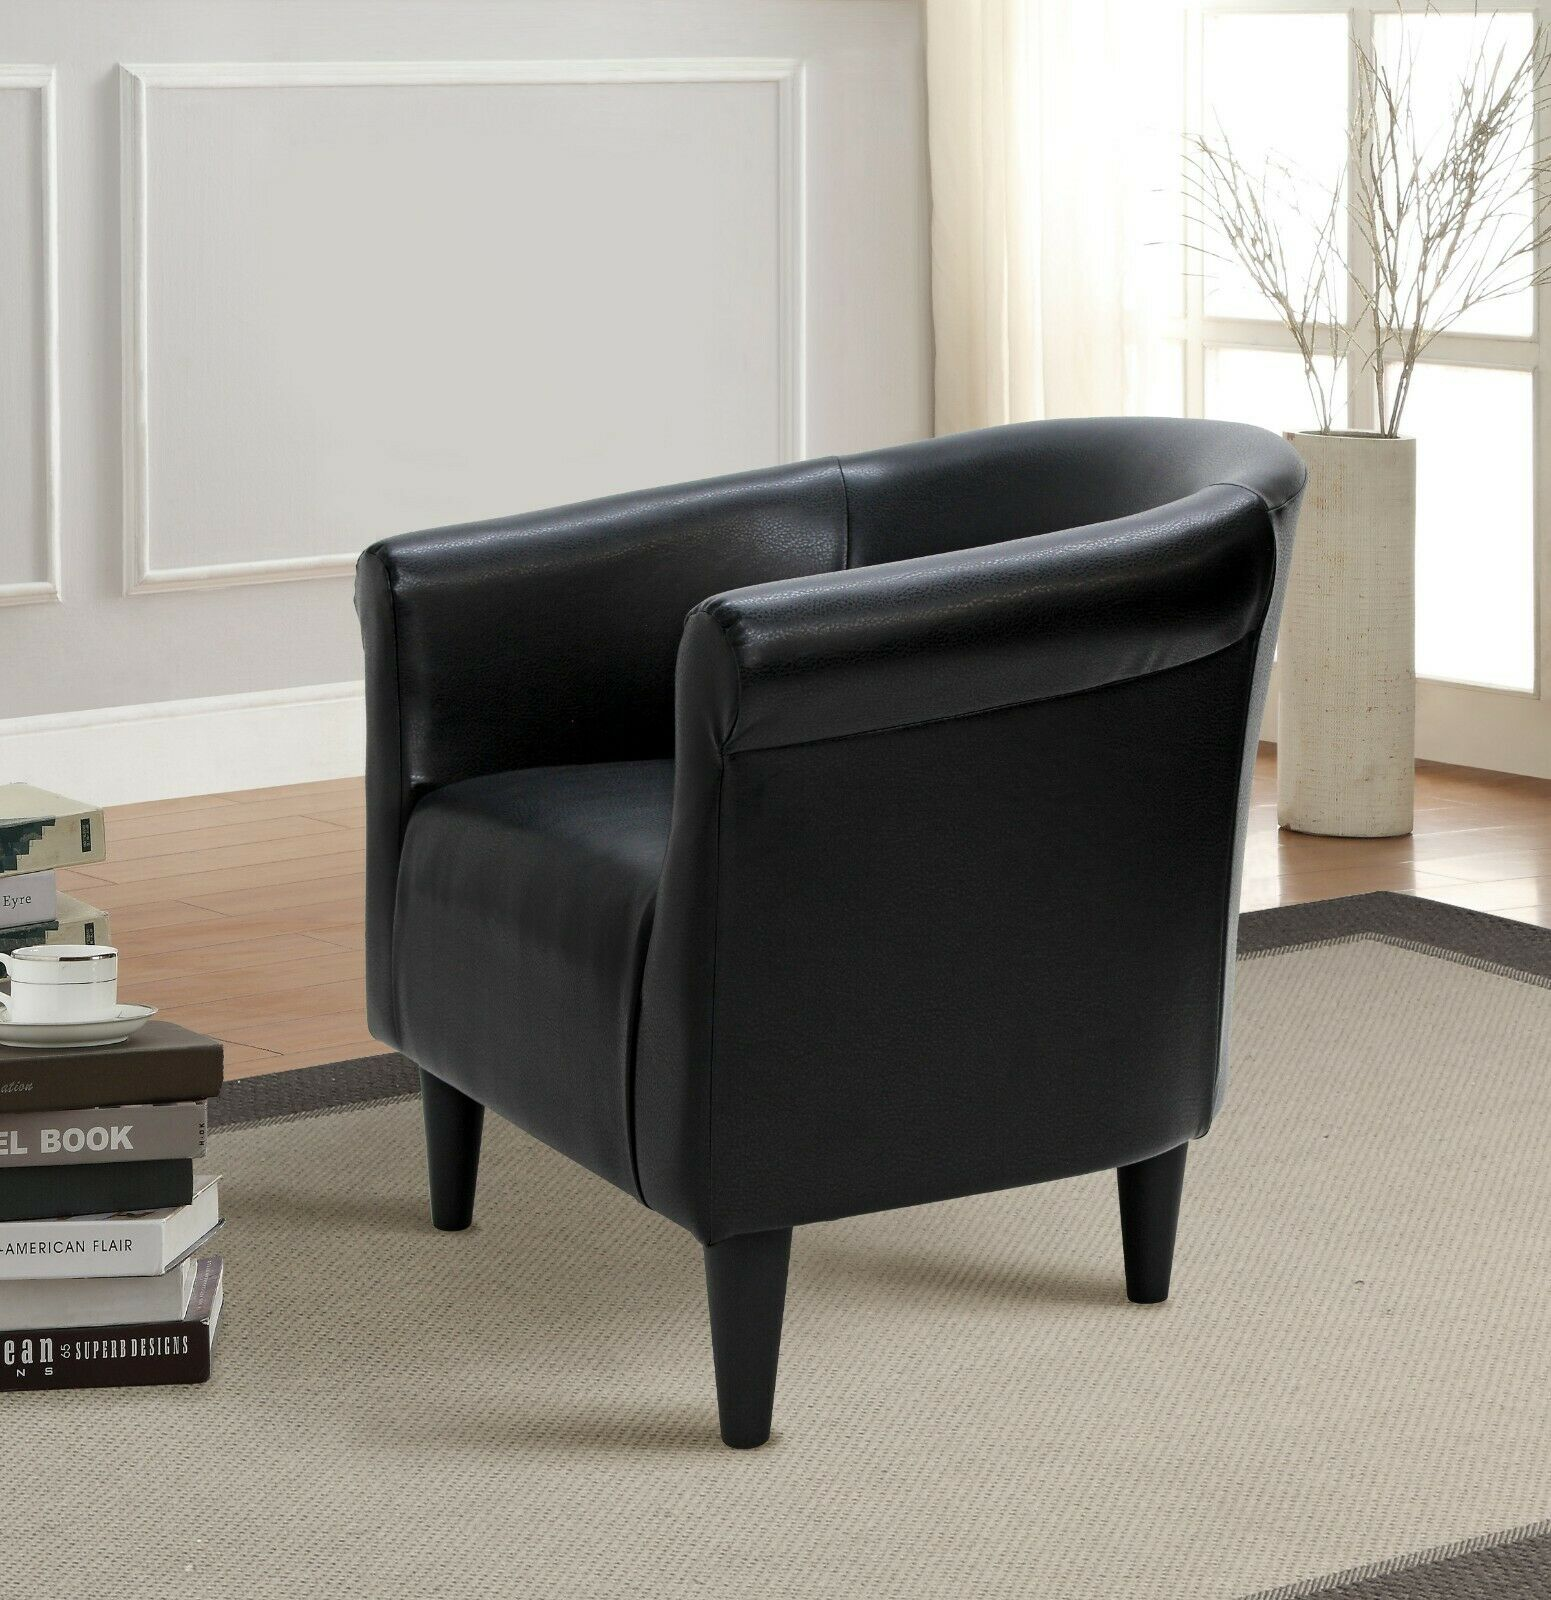 Aurelle Home Rudolph Black Leather Accent Chair Black Modern Contemporary Rus For Sale Online Ebay